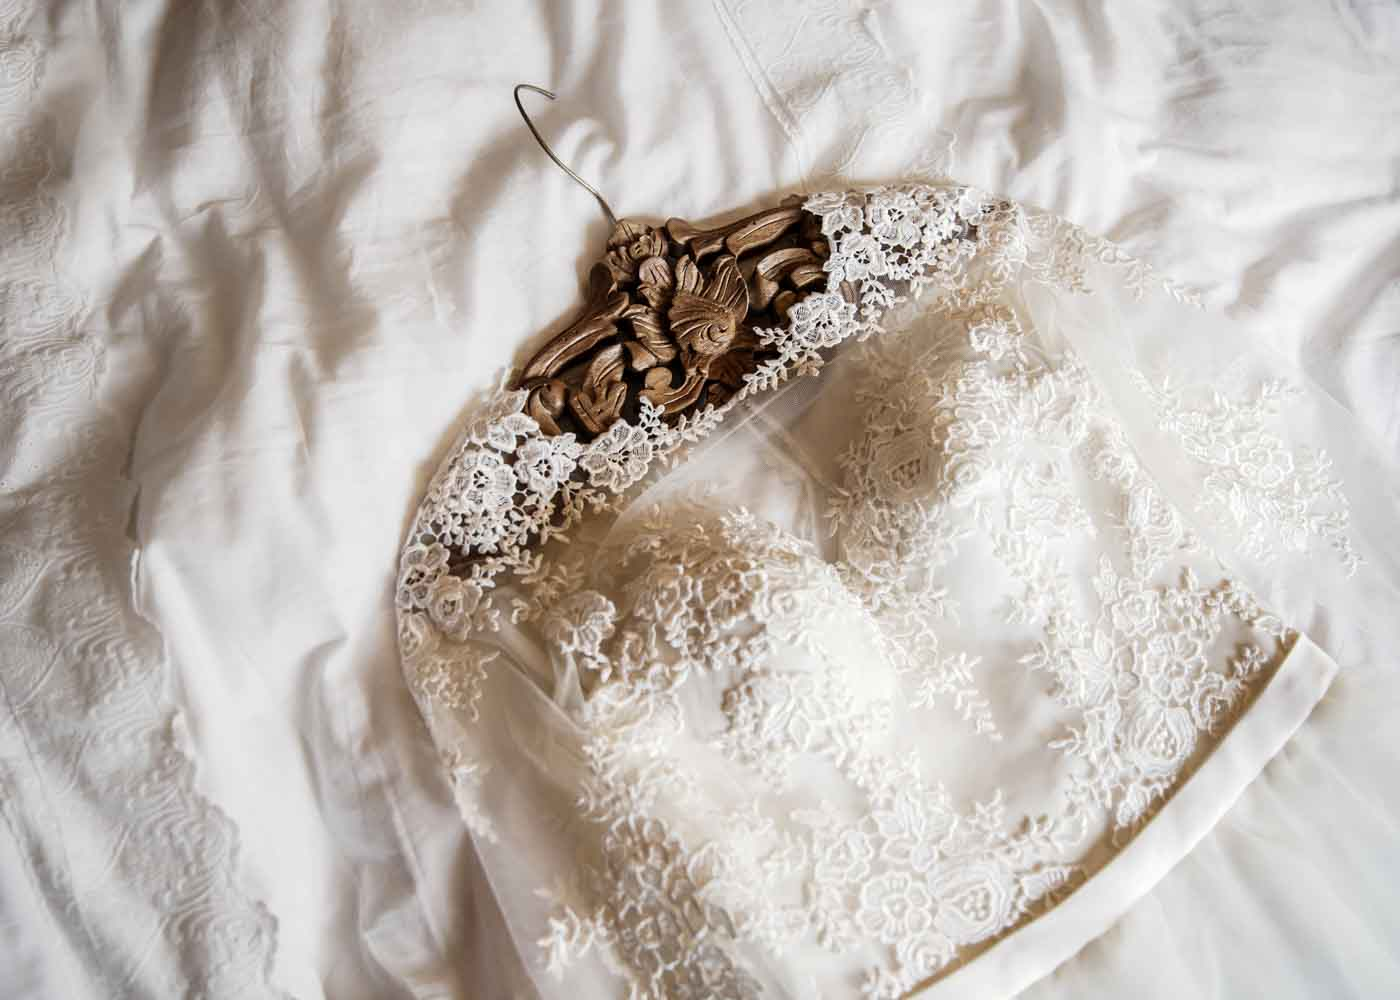 Consider giving a vintage or personalized hanger for the bride's wedding dress.